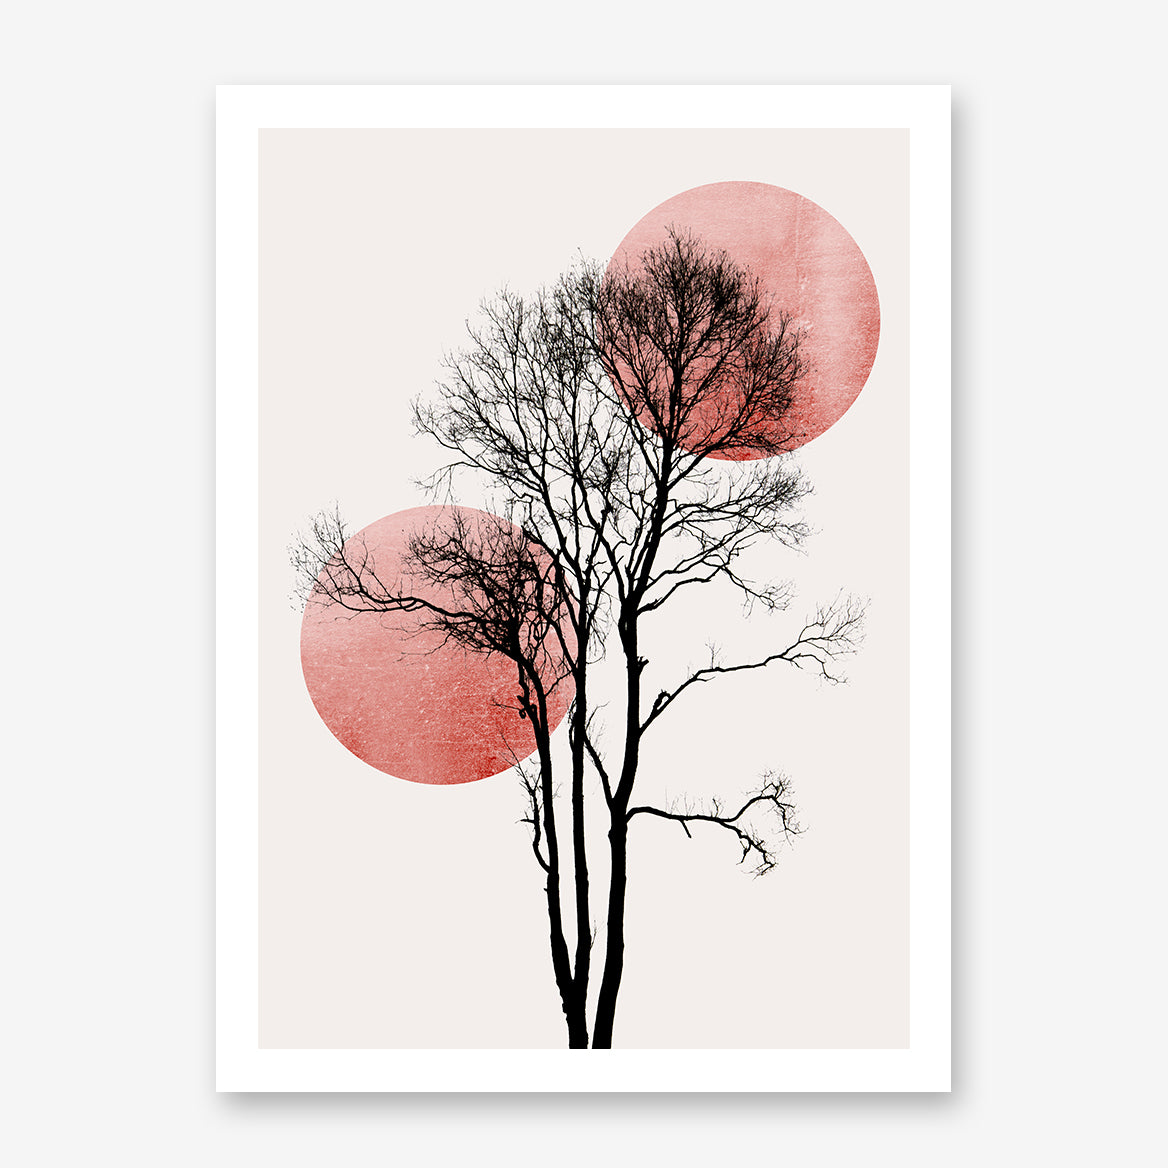 Minimalist illustration print by Kubistika, with a black tree and rose sun and moon, on light grey background.